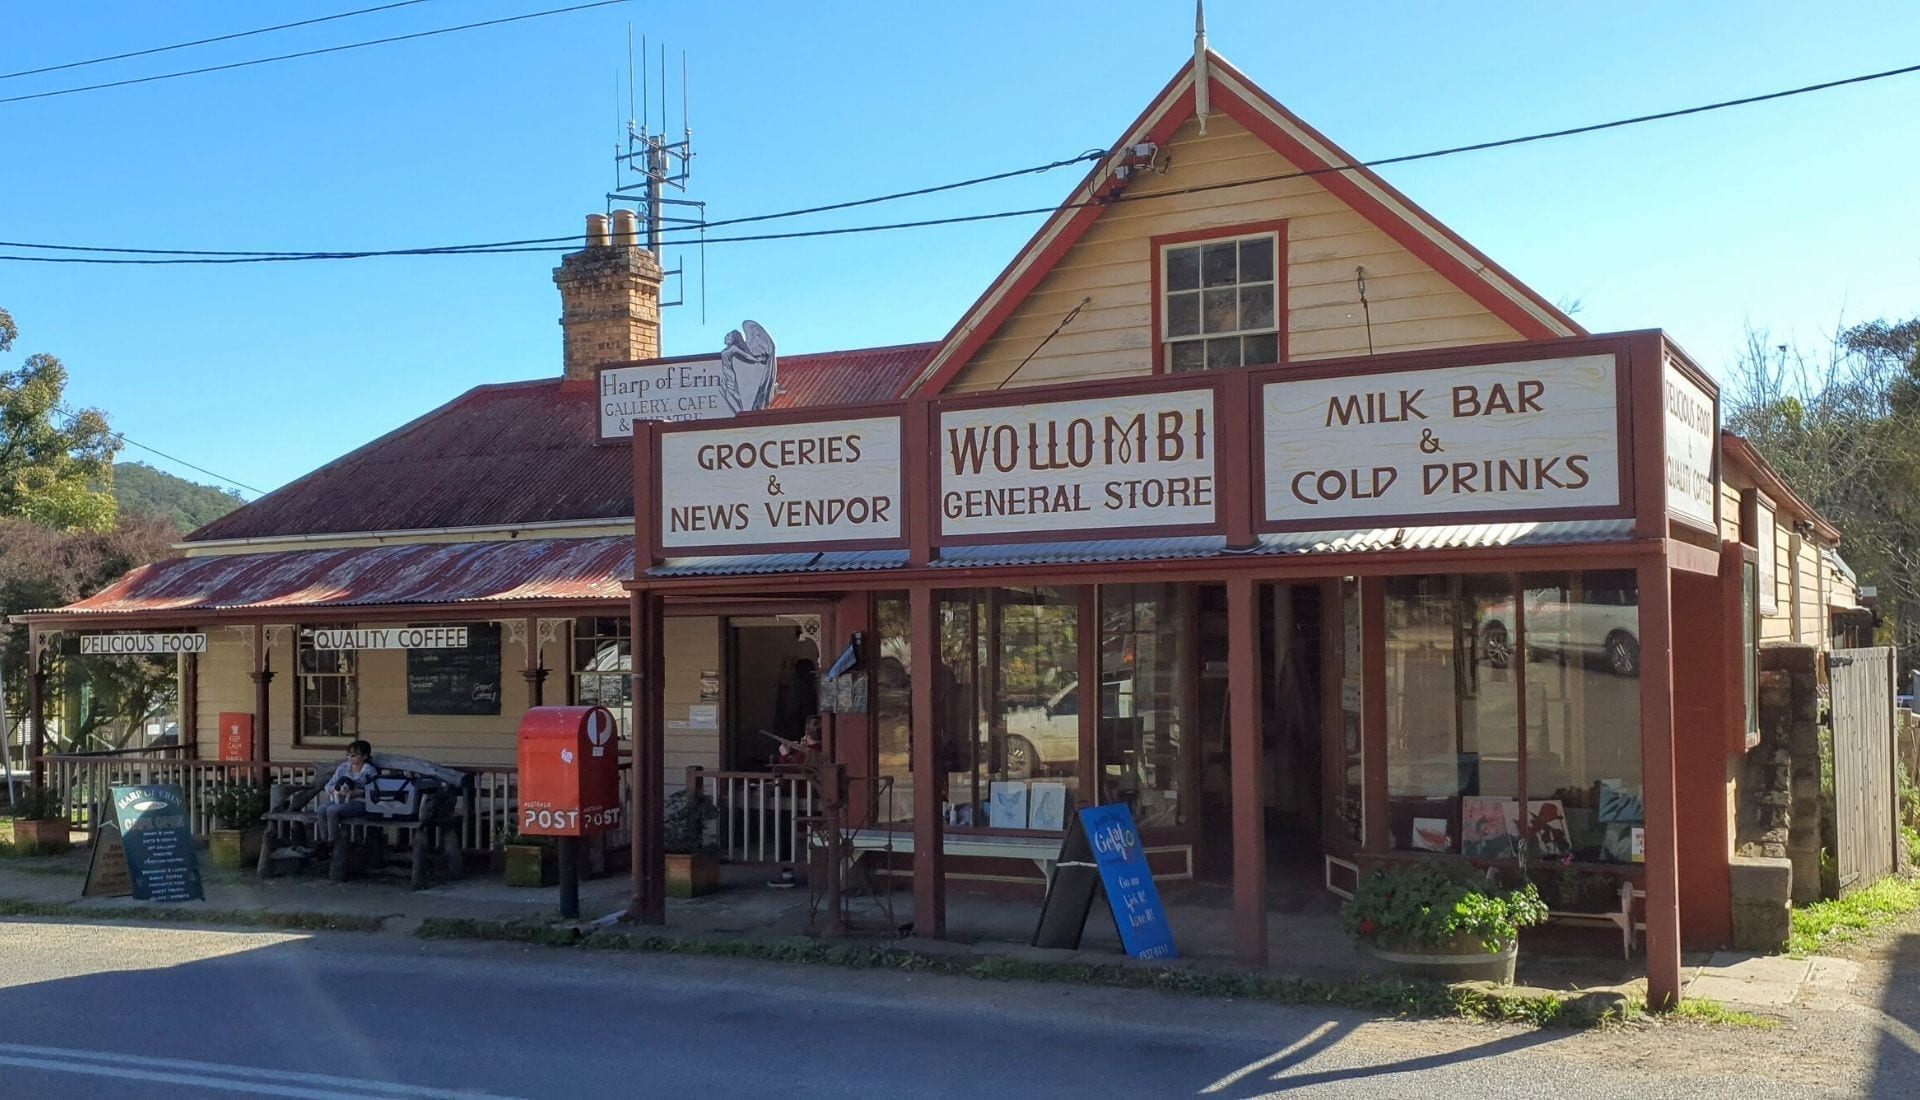 The country town of Wollombi